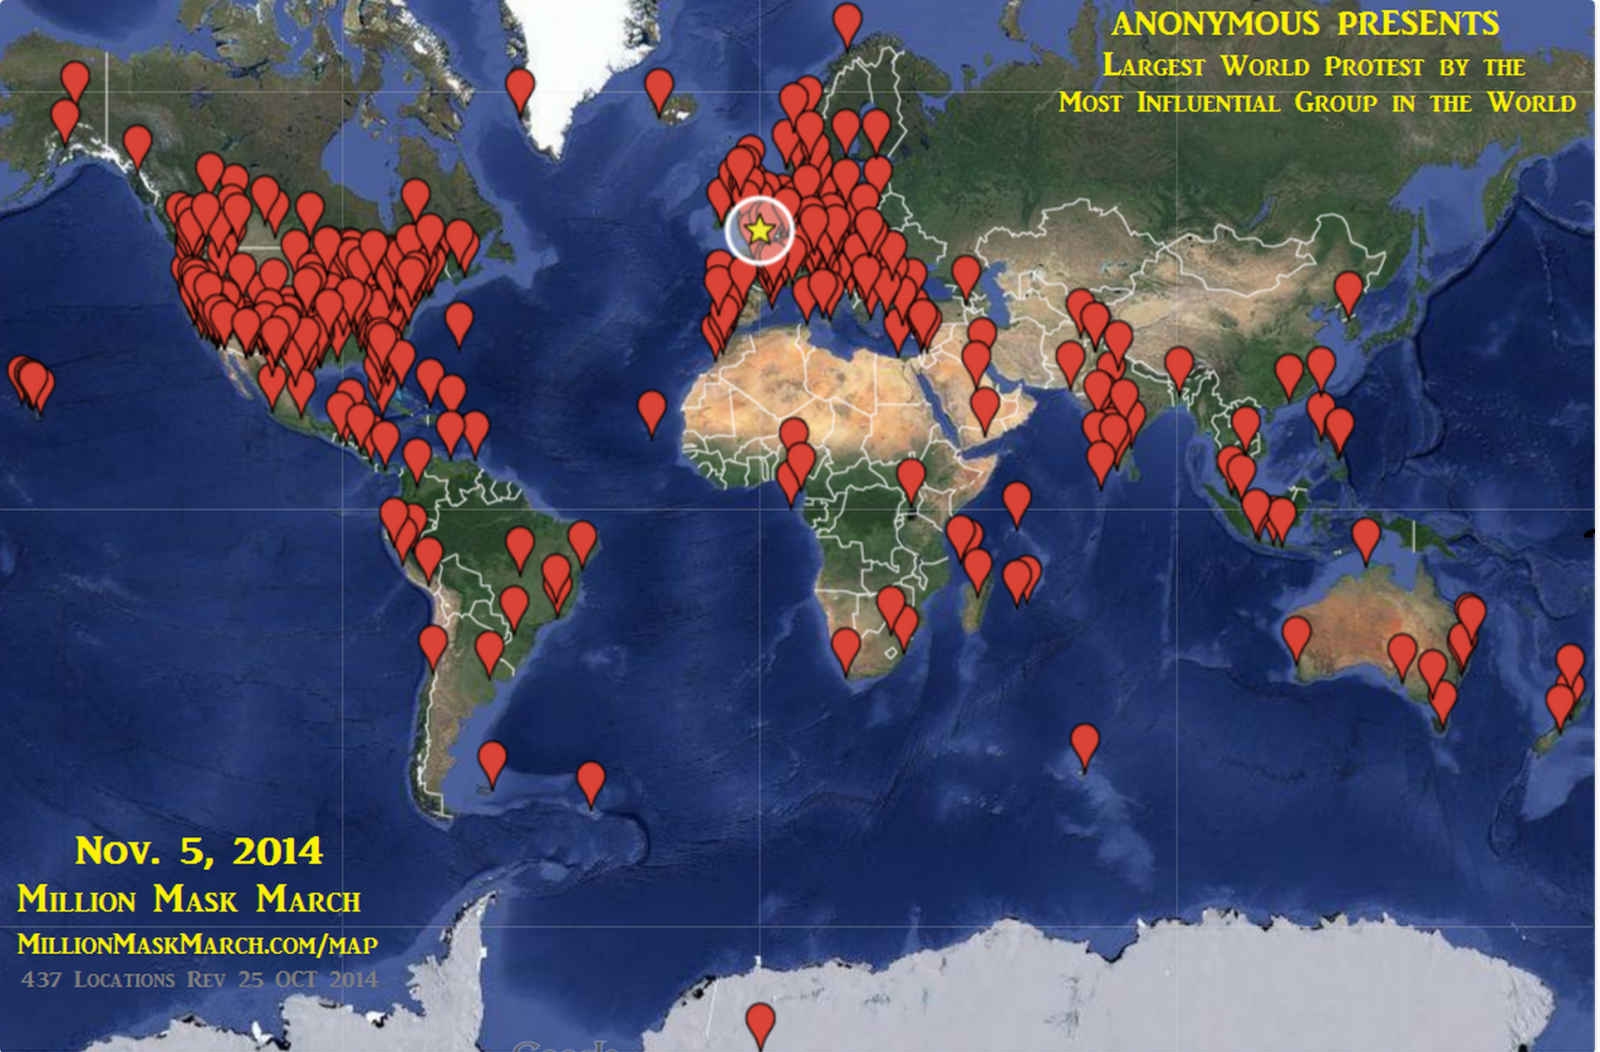 Anonymous 'Million Mask March' Taking Place in 463 Locations Around the World on 5 November